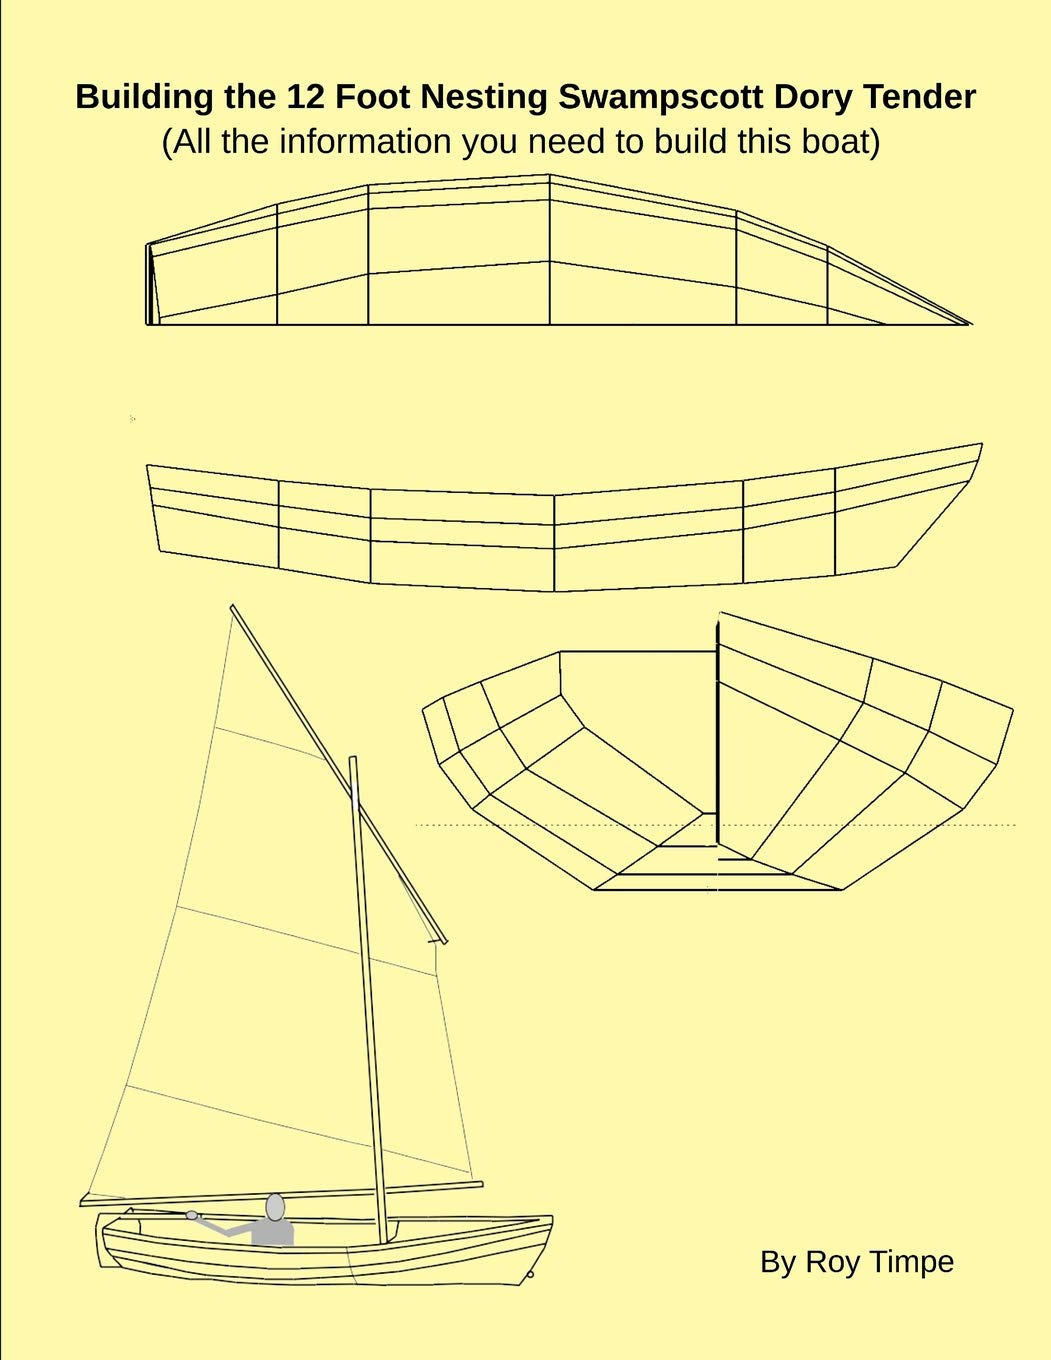 Building the 12 Foot Nesting Swampscott Dory Tender: (All